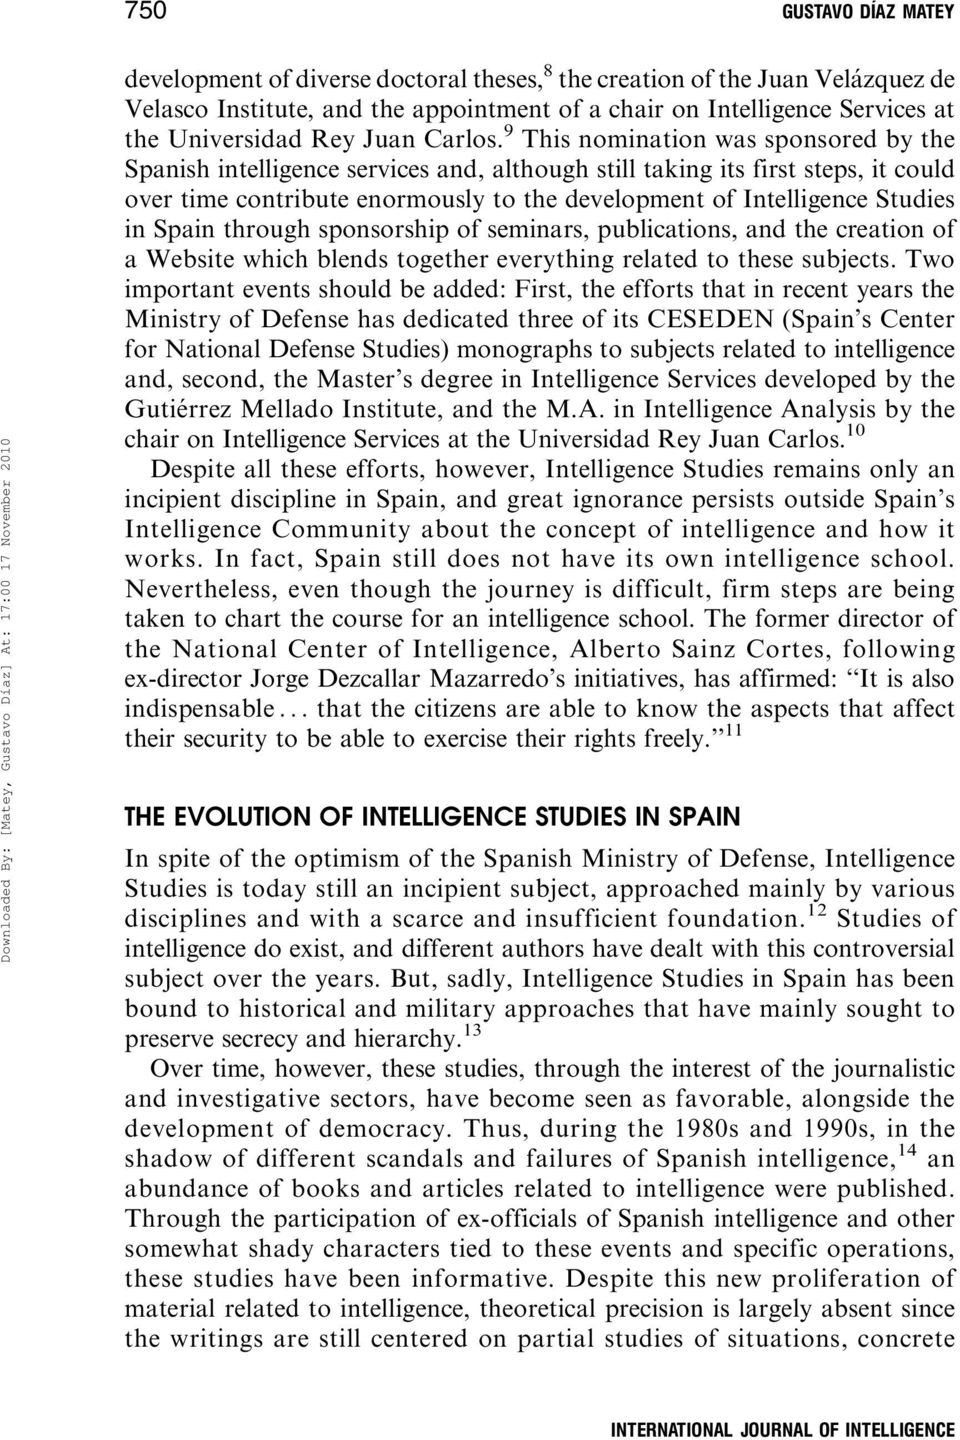 9 This nomination was sponsored by the Spanish intelligence services and, although still taking its first steps, it could over time contribute enormously to the development of Intelligence Studies in